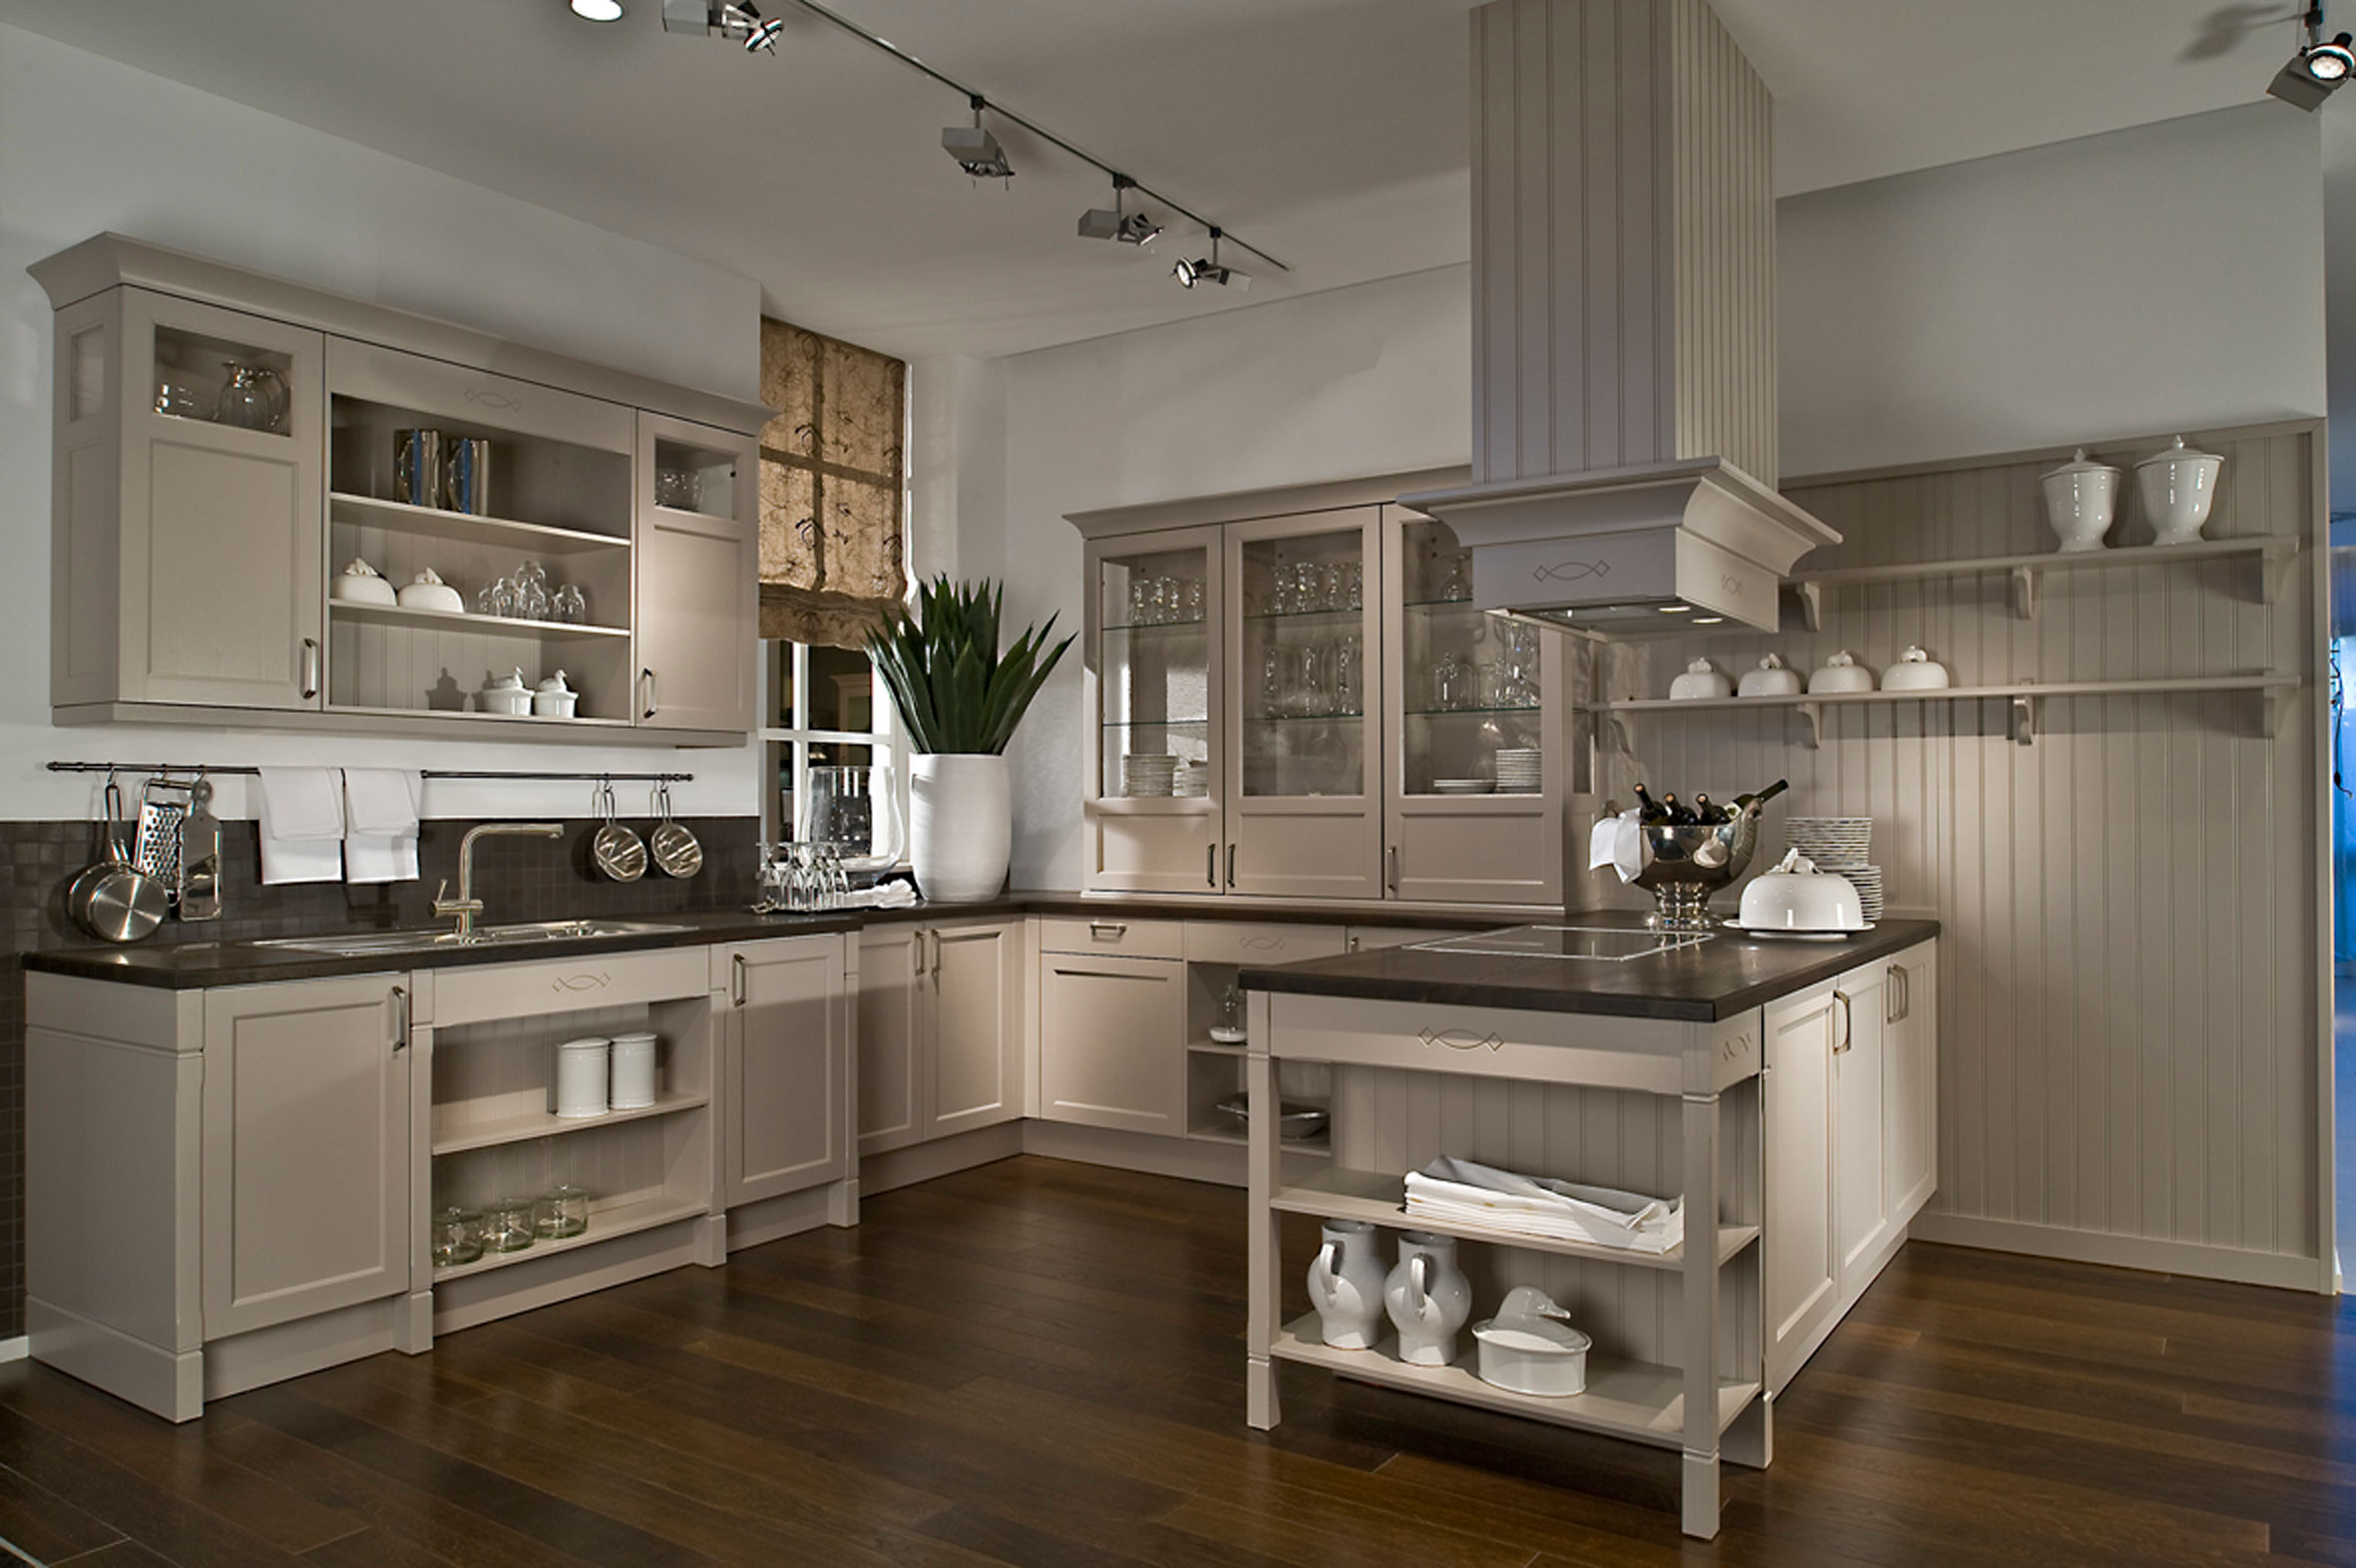 Riviera Maison Stijl Keuken : Traditional Kitchen Painted Cabinets with Wood